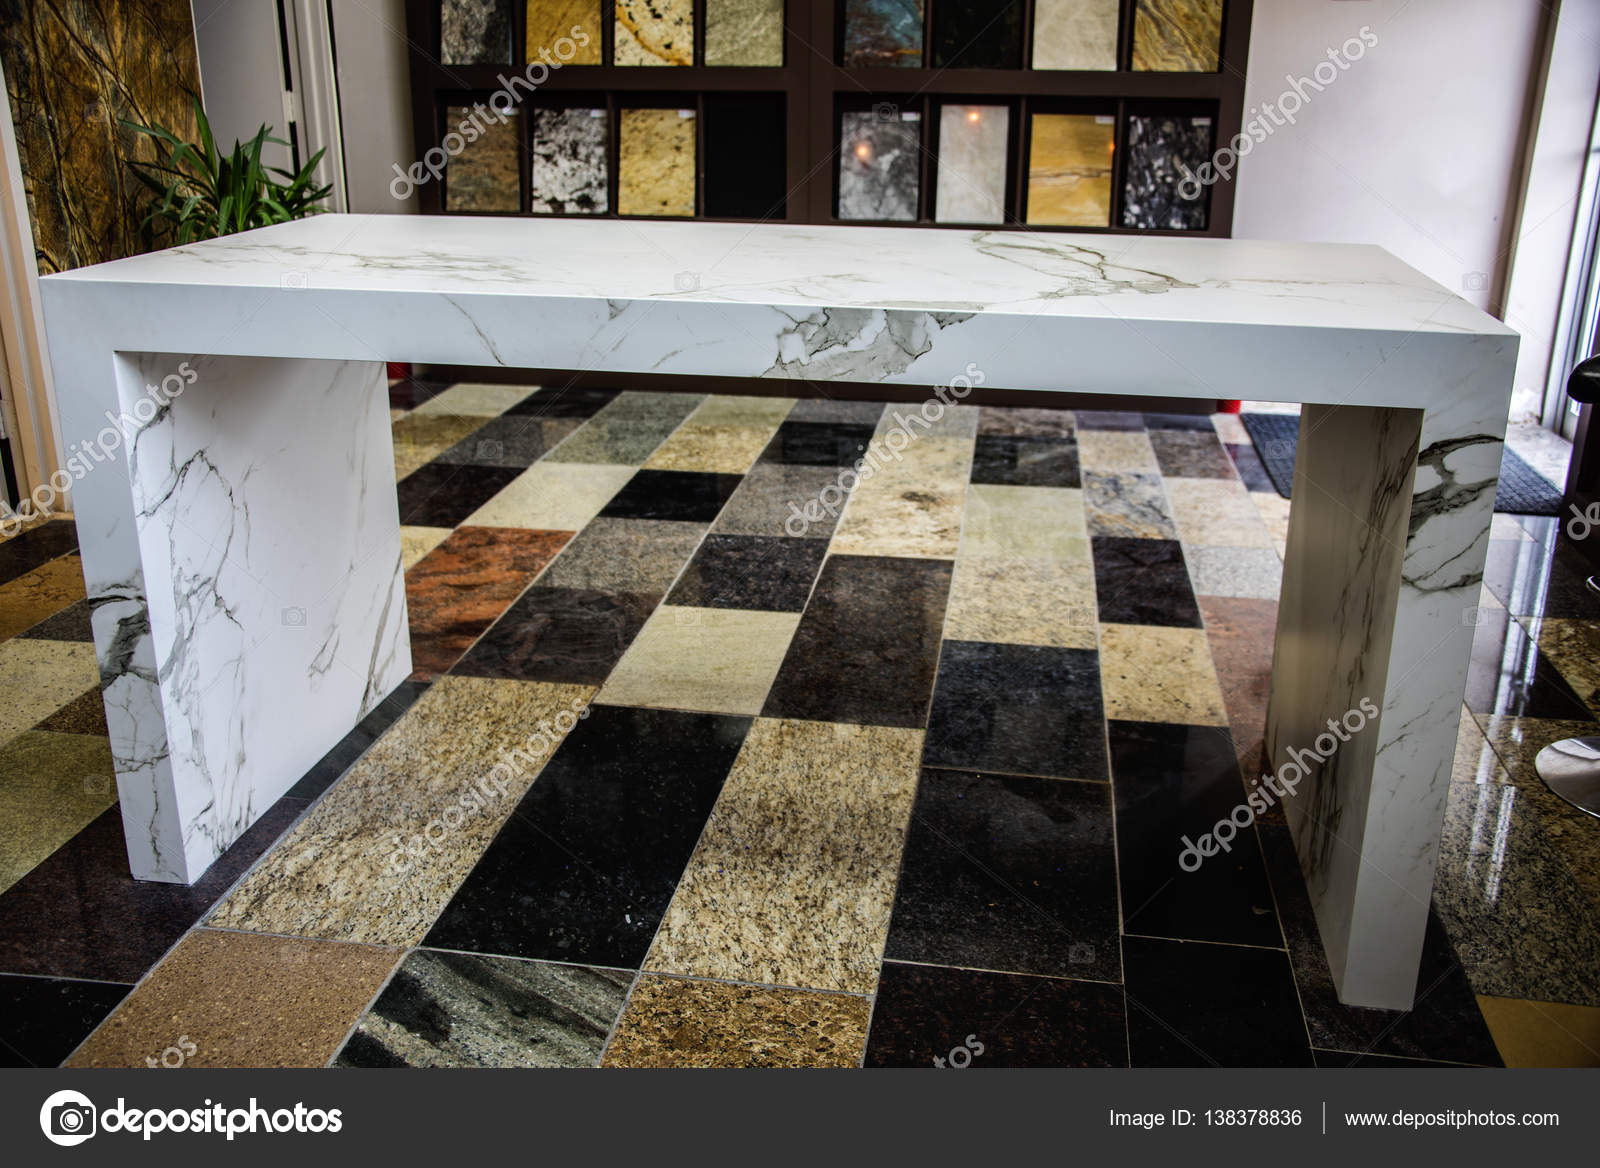 Remodeled Display Room With Granite, Marble, Quartz Countertops U2014 Stock  Photo